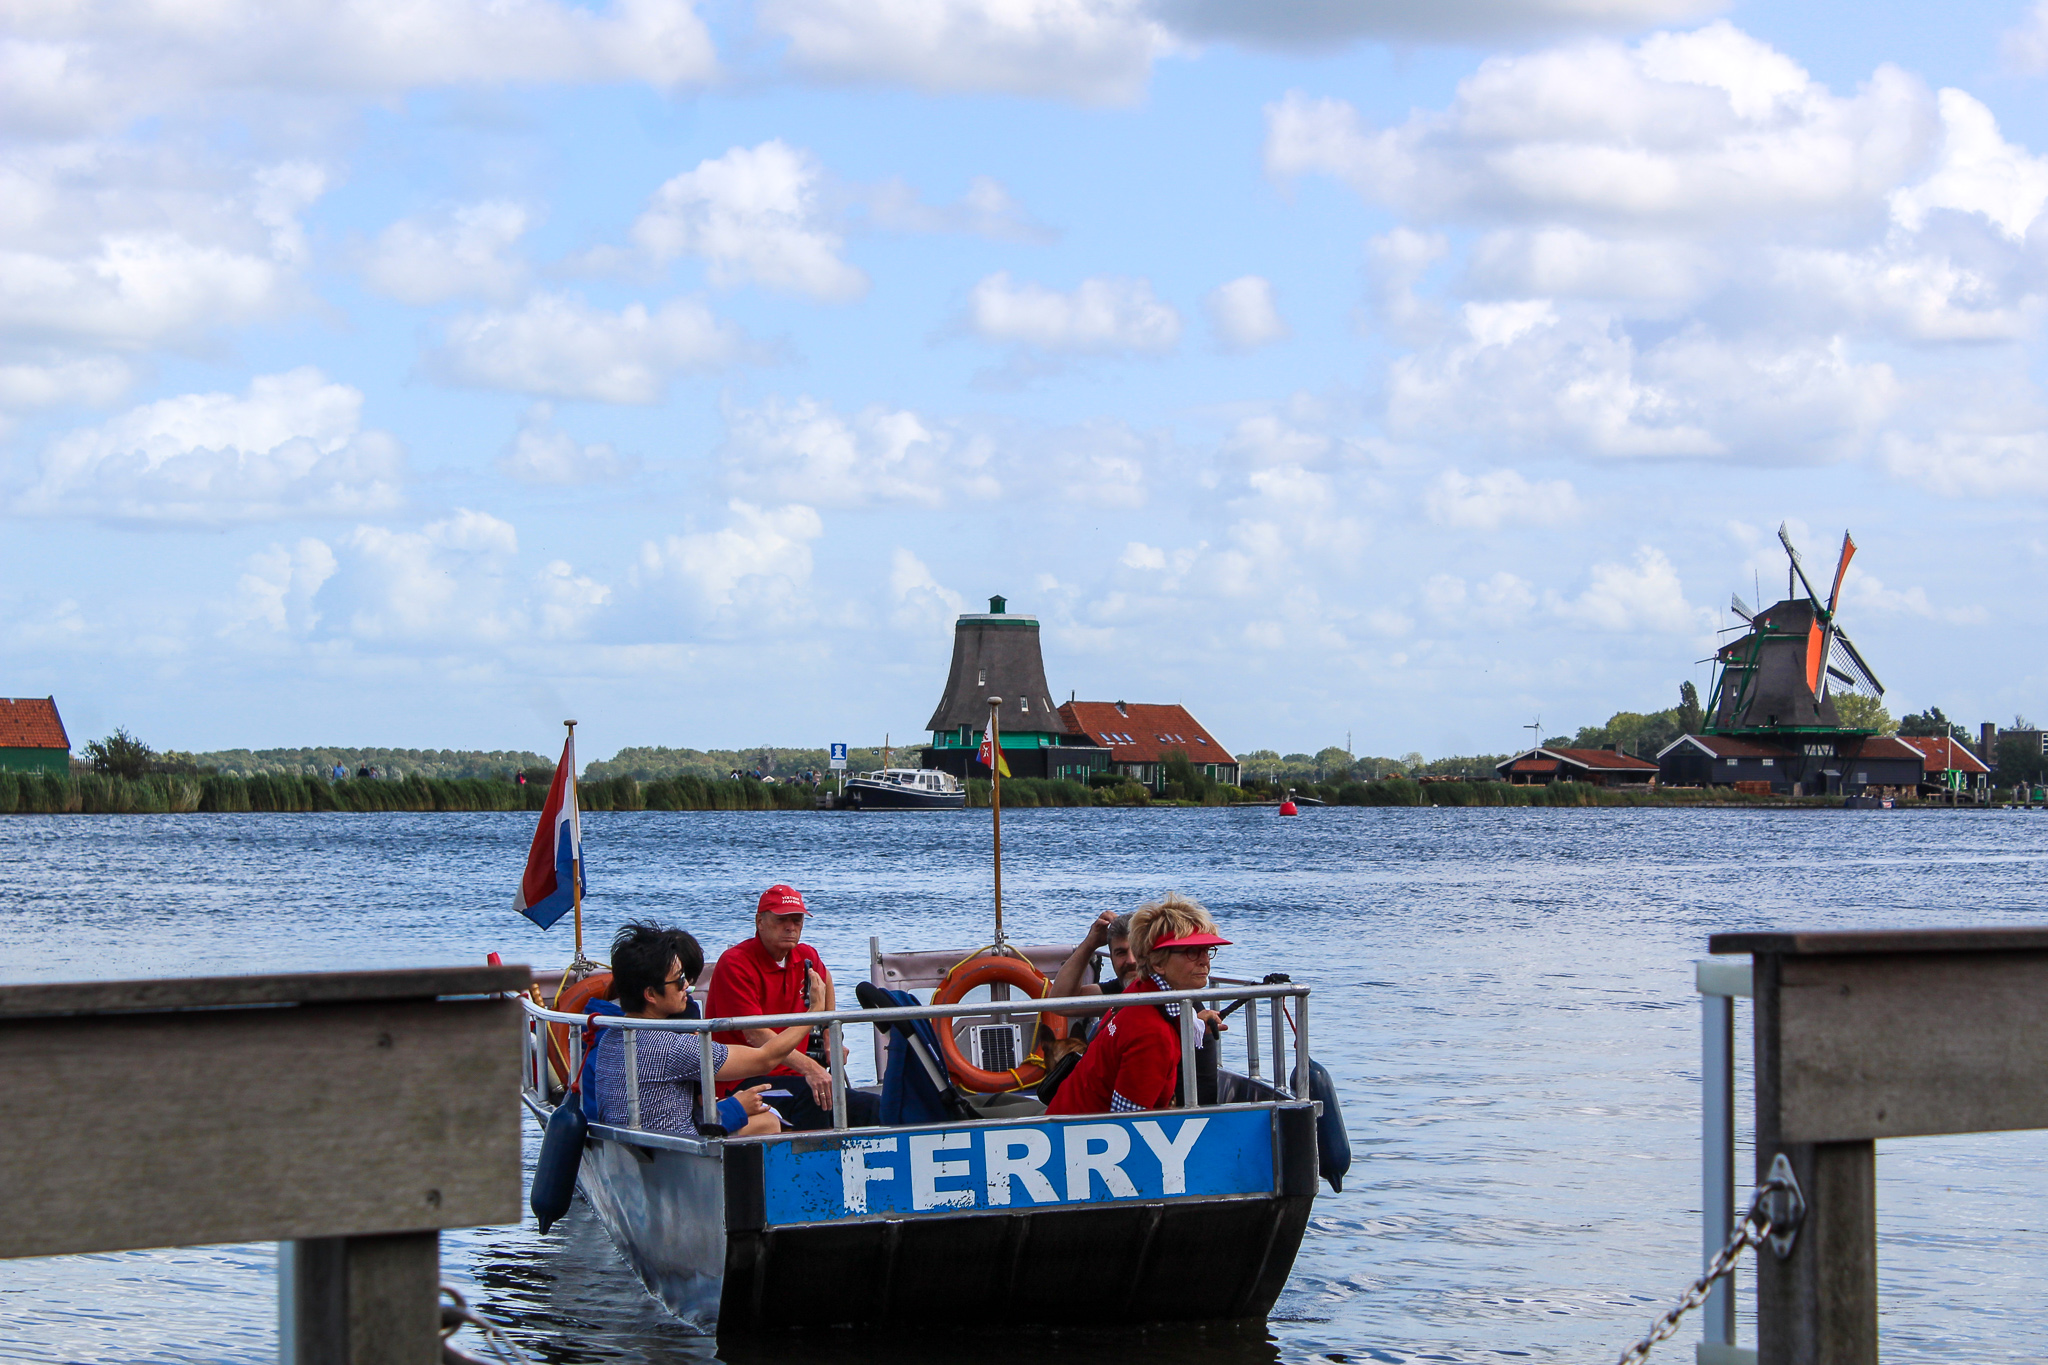 the adorable ferry is one of the things to do in zaanse schans